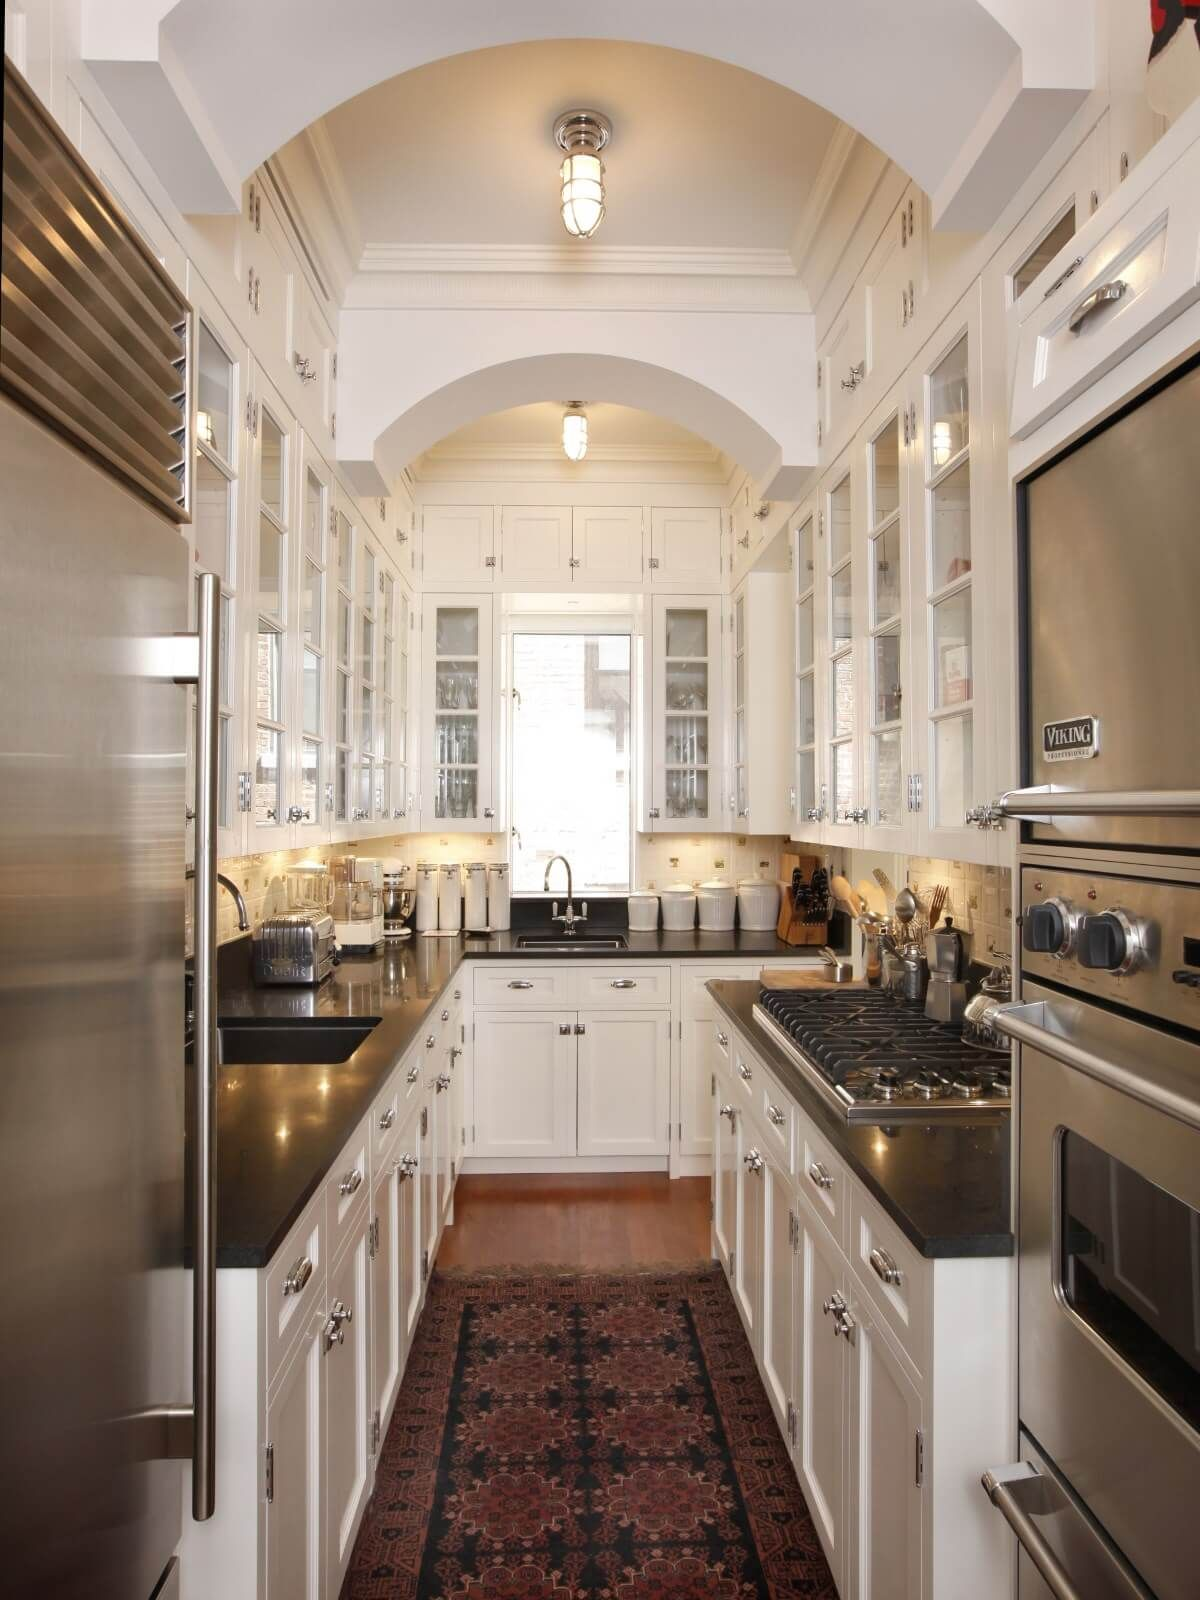 33 Small-But-Stylish Galley Kitchens | Galley kitchen design ... on small galley kitchens plans for kitchen, for a cottage kitchen small kitchen, for small kitchen remodeling galley kitchen,